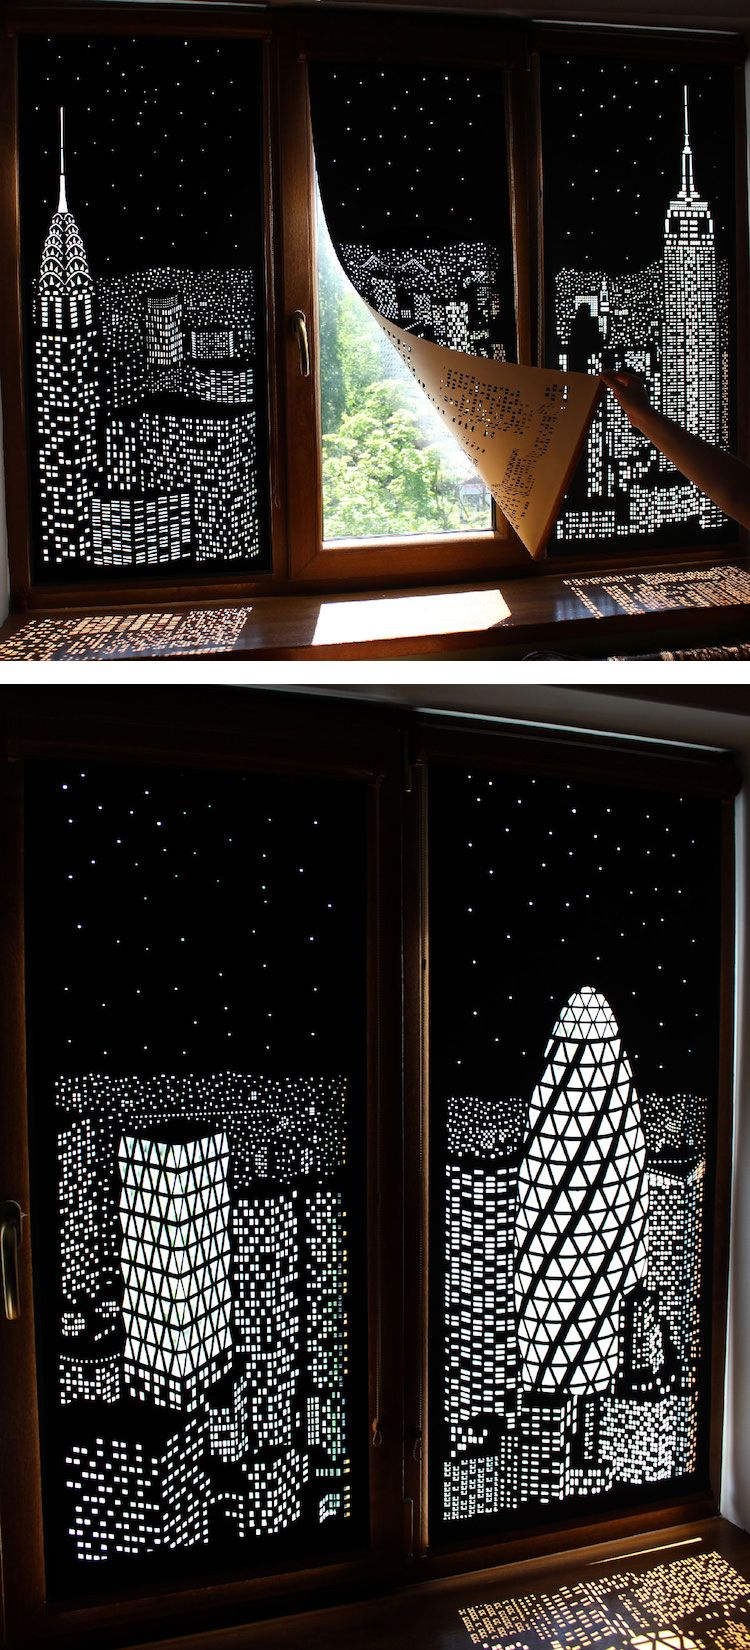 Ukrainian designers holeroll have created a unique window blinds